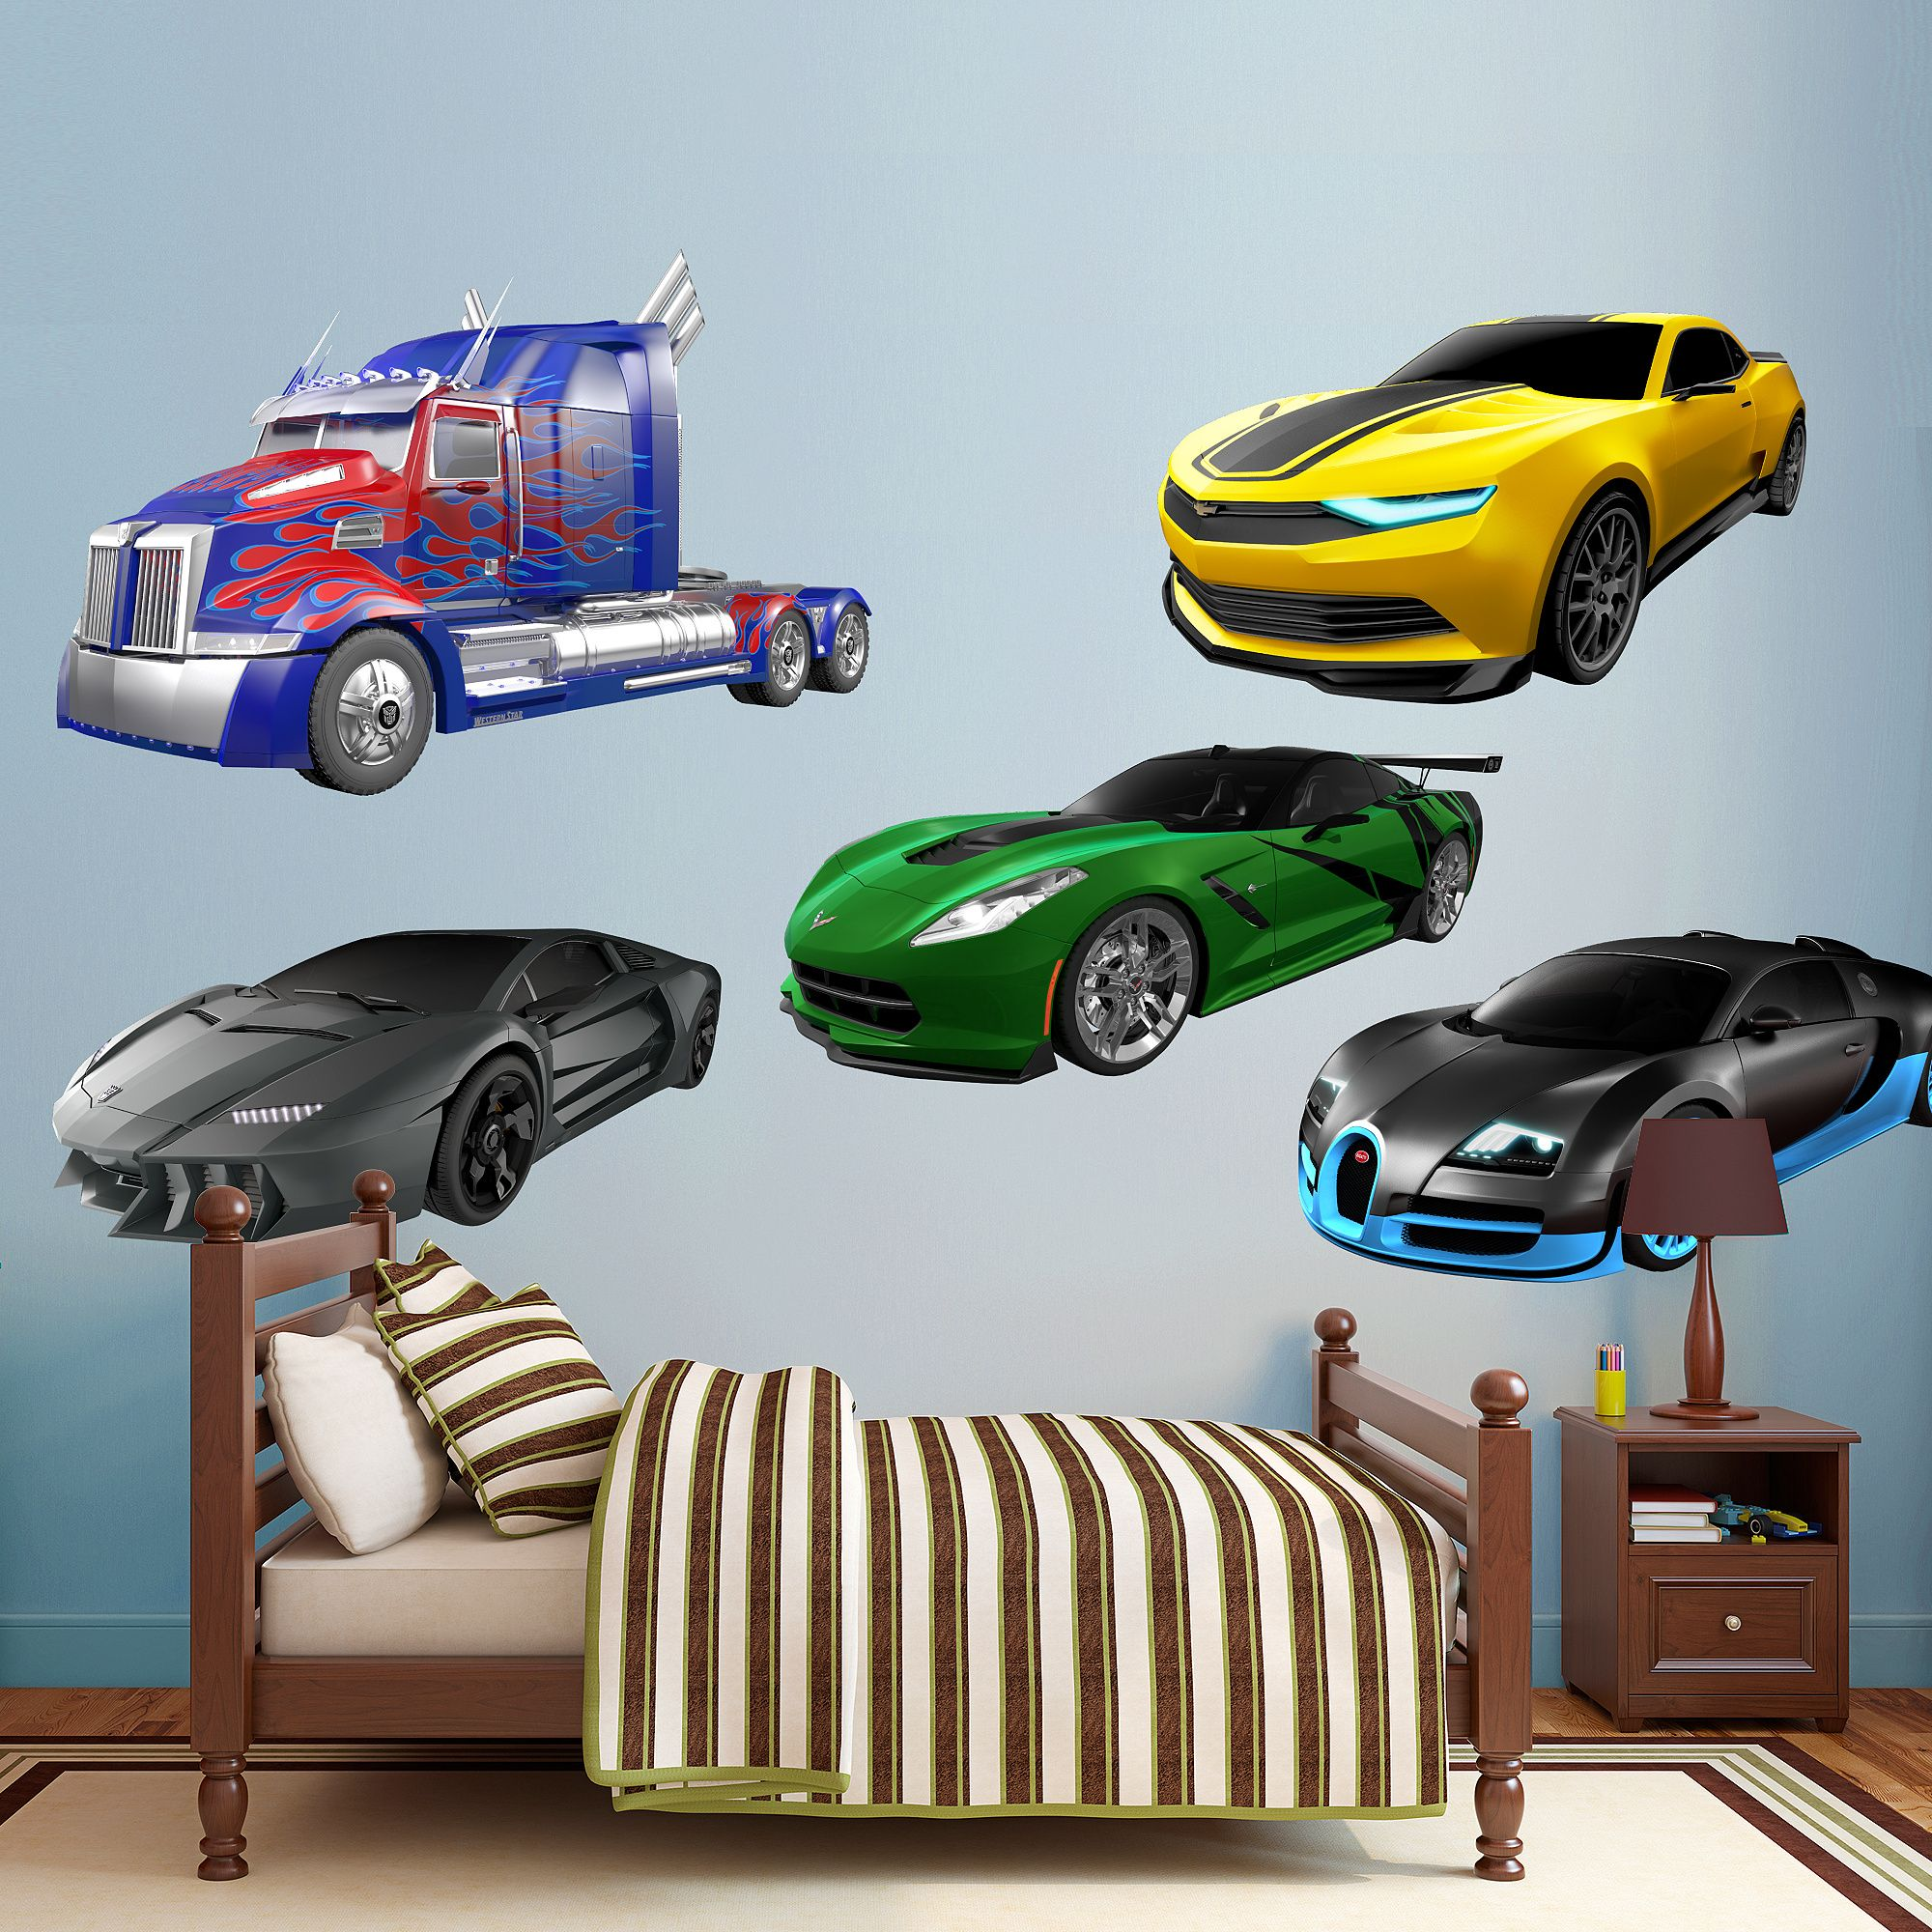 Transformers Age Of Extinction Vehicle Collection Wall Decal Transformers Wall Decal Transformers Age Transformers Transformers Age Of Extinction